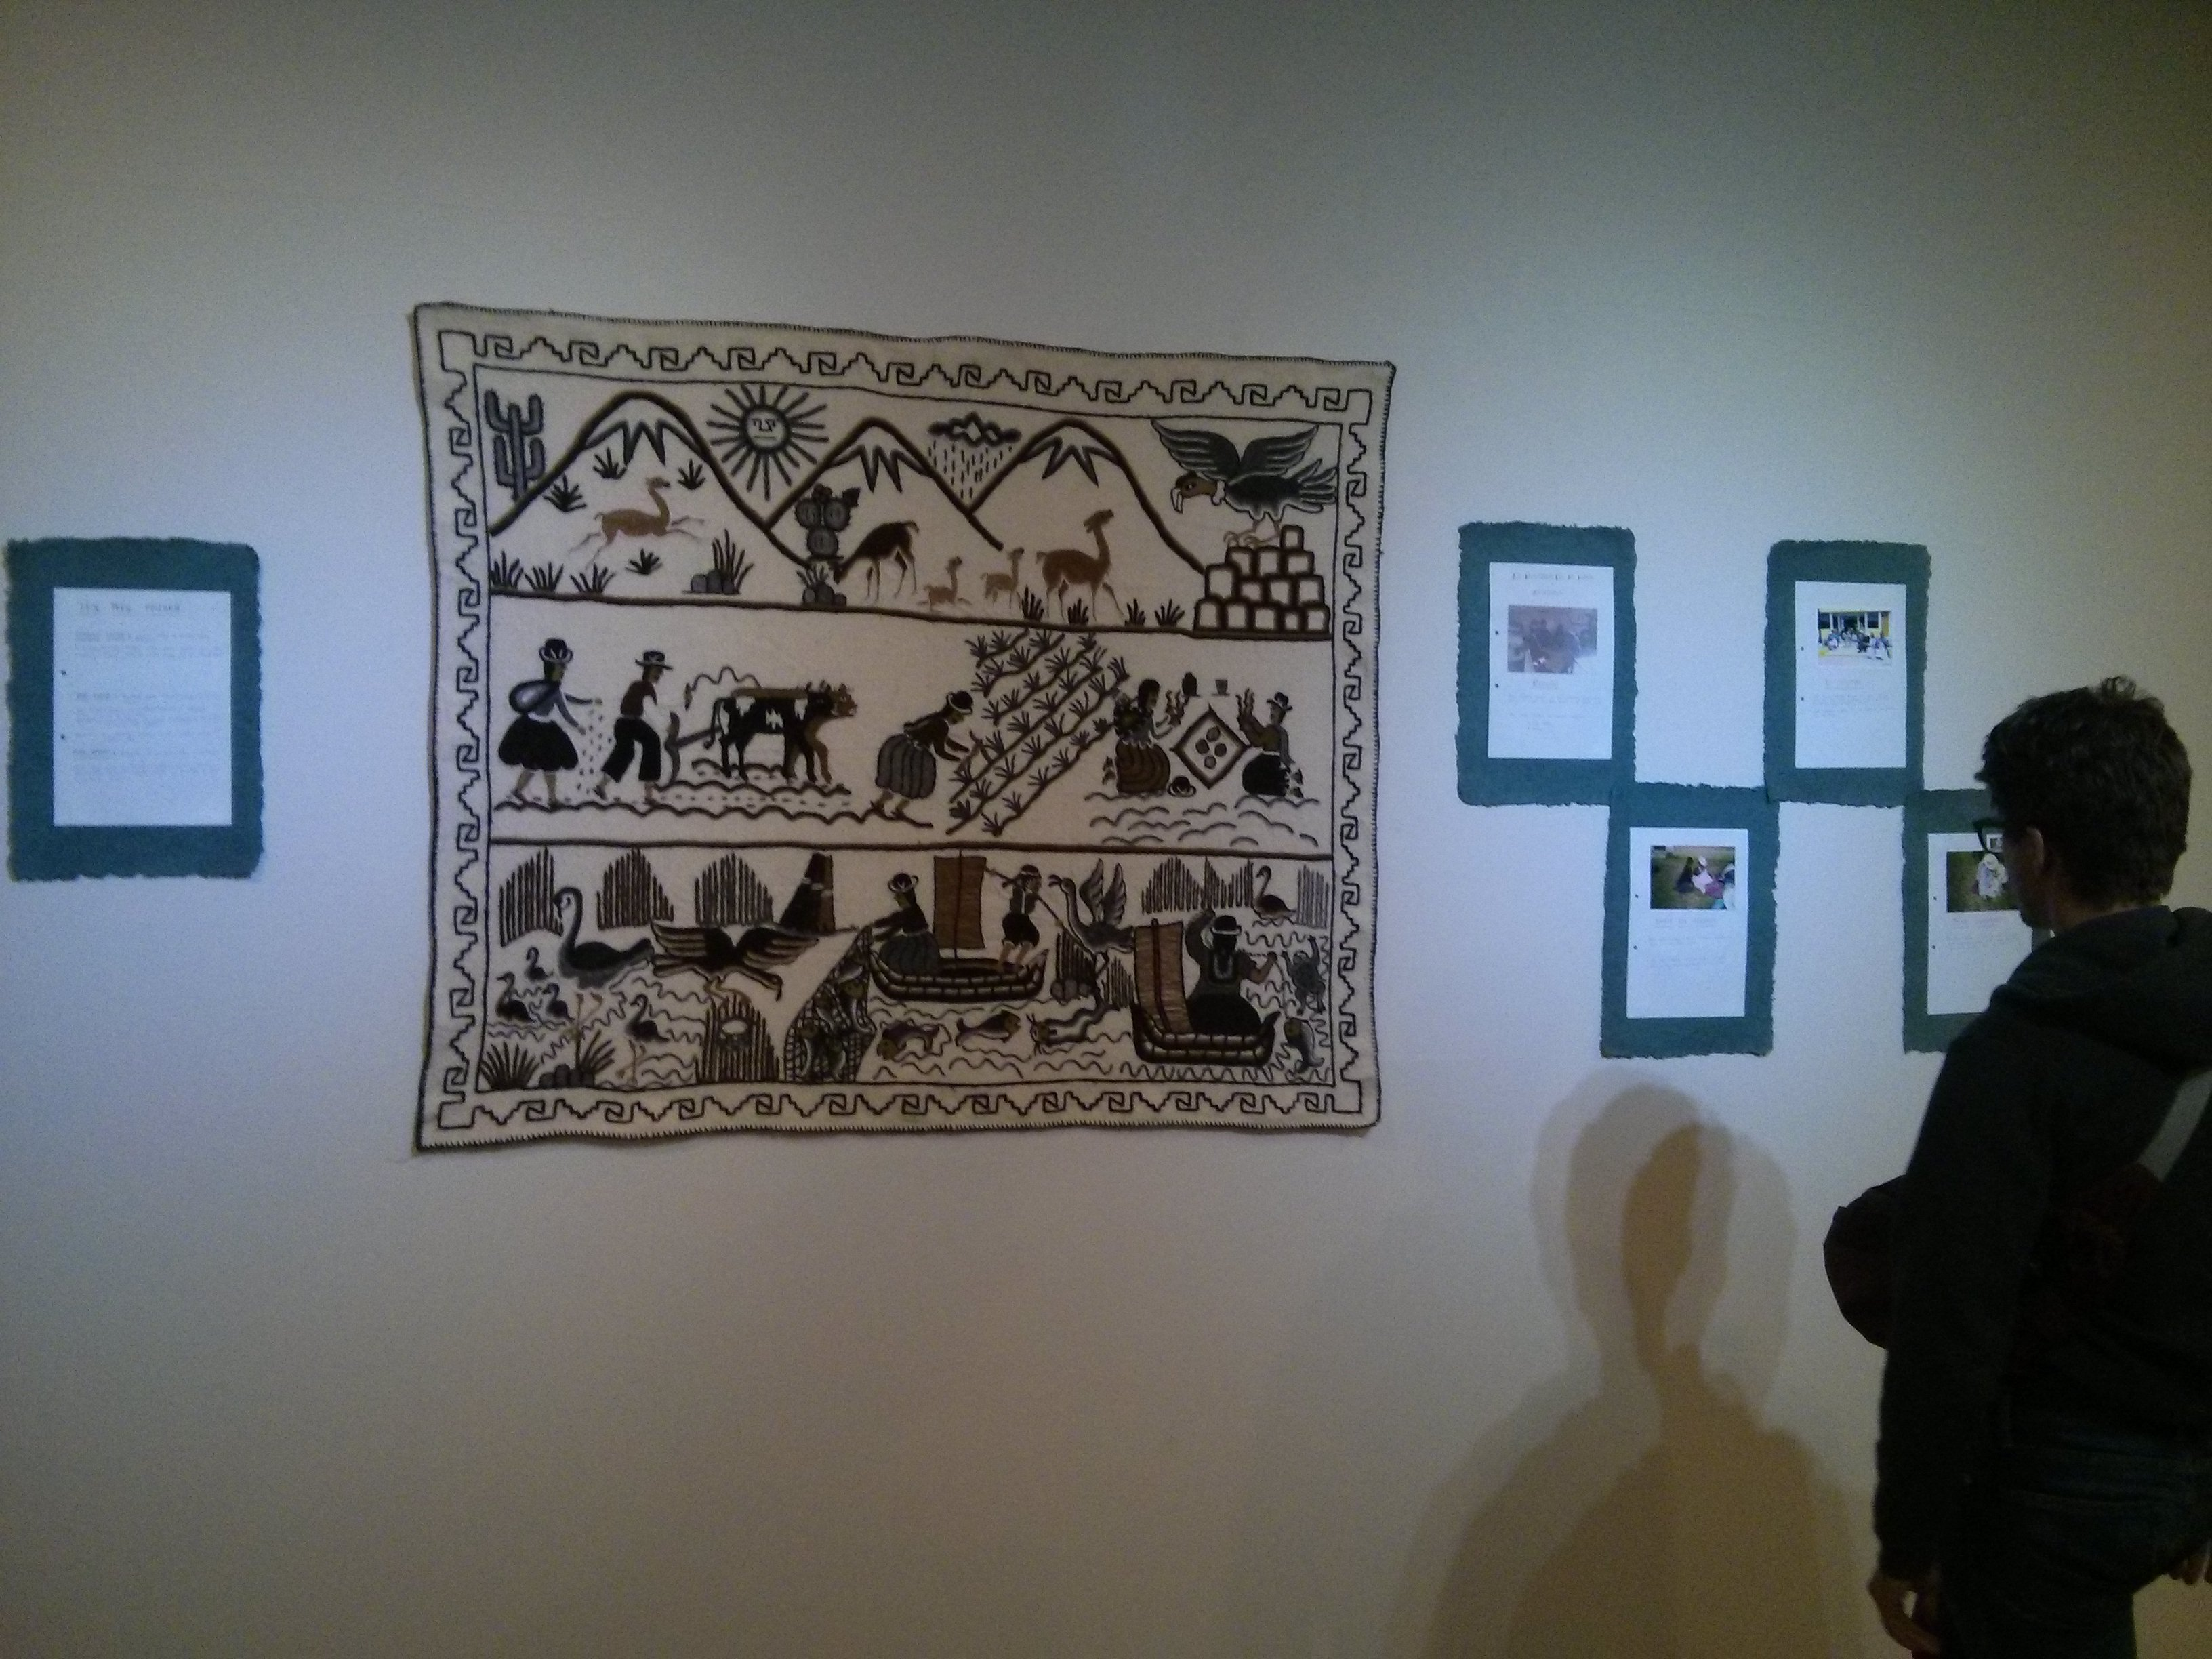 "Commissioned ""bordado"" (embroidery) work by Bartolinas de Olla-Juli (Puno), a women's artisenal association in collaboration with Peruvian feminist agency Movimiento Manuela Ramos."